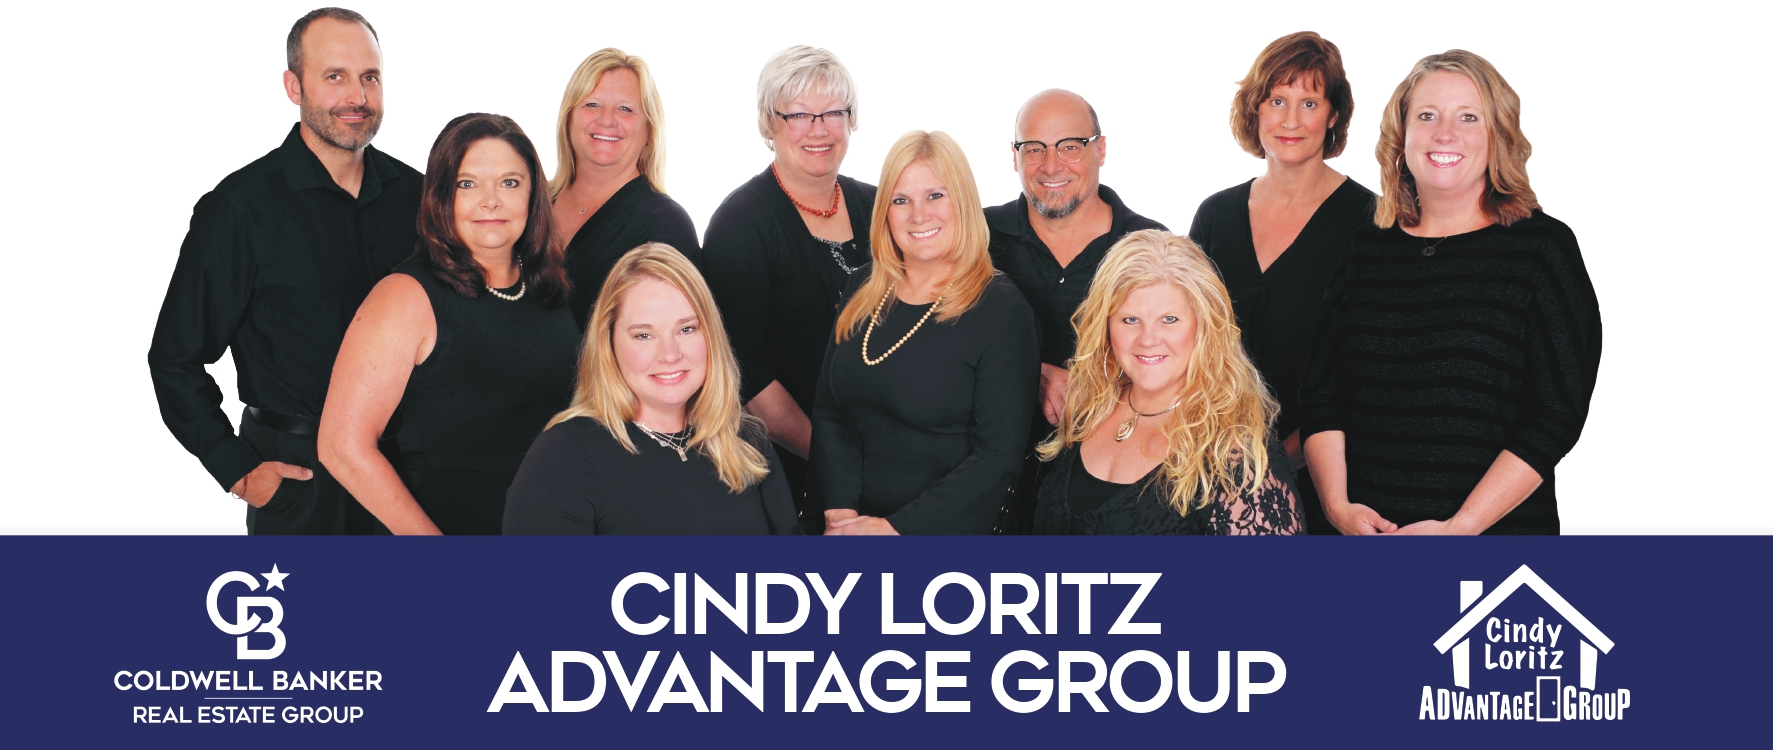 Cindy Loritz Advantage Group